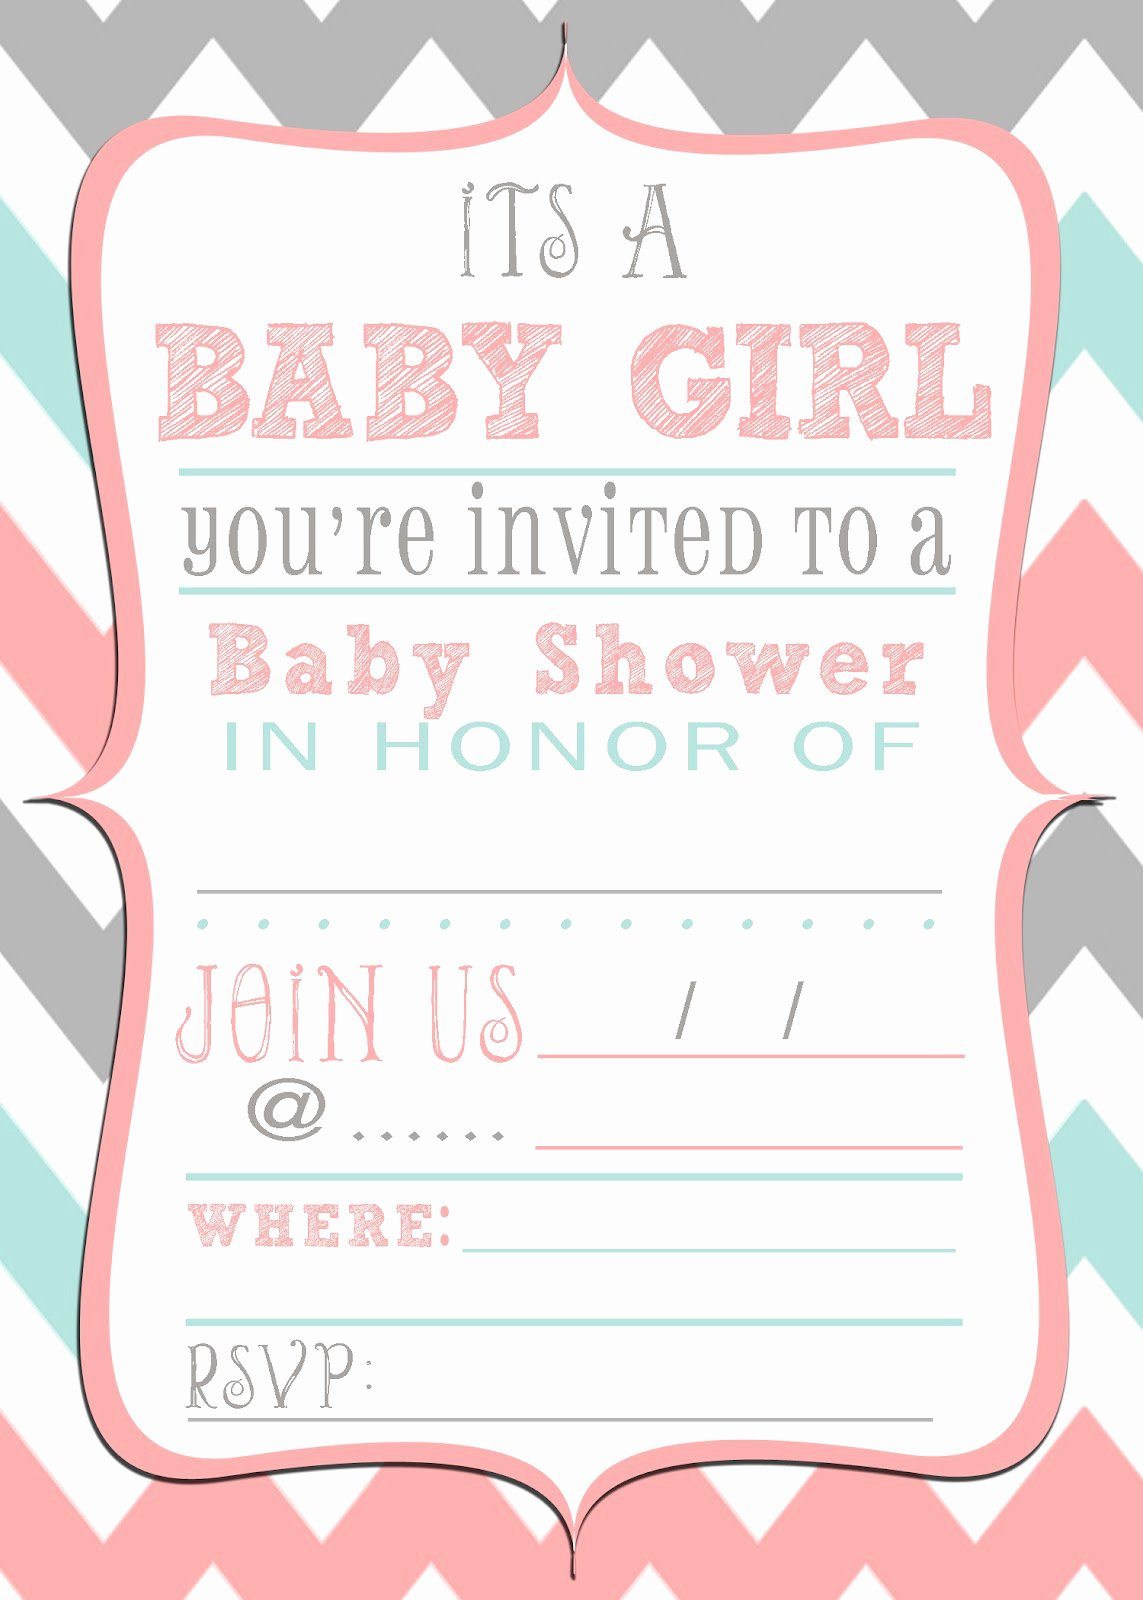 Downloadable Baby Shower Invitation Templates Elegant Mrs This and that Baby Shower Banner Free Downloads